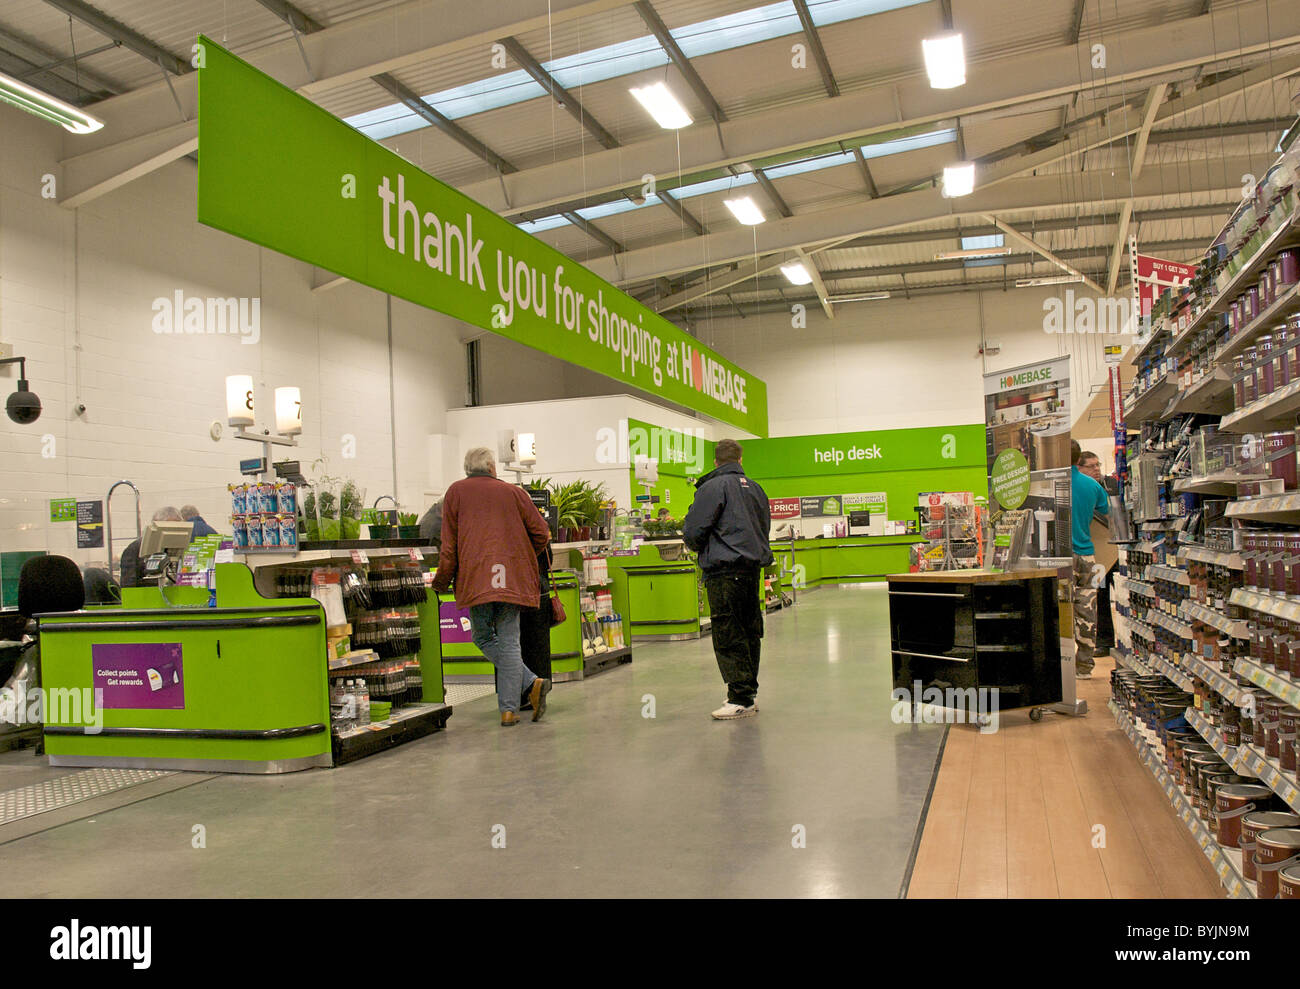 Interior Of Large Store Showing The Wide Range Of Merchandise Available.  This Is The Checkout Area In A Major DIY Superstore